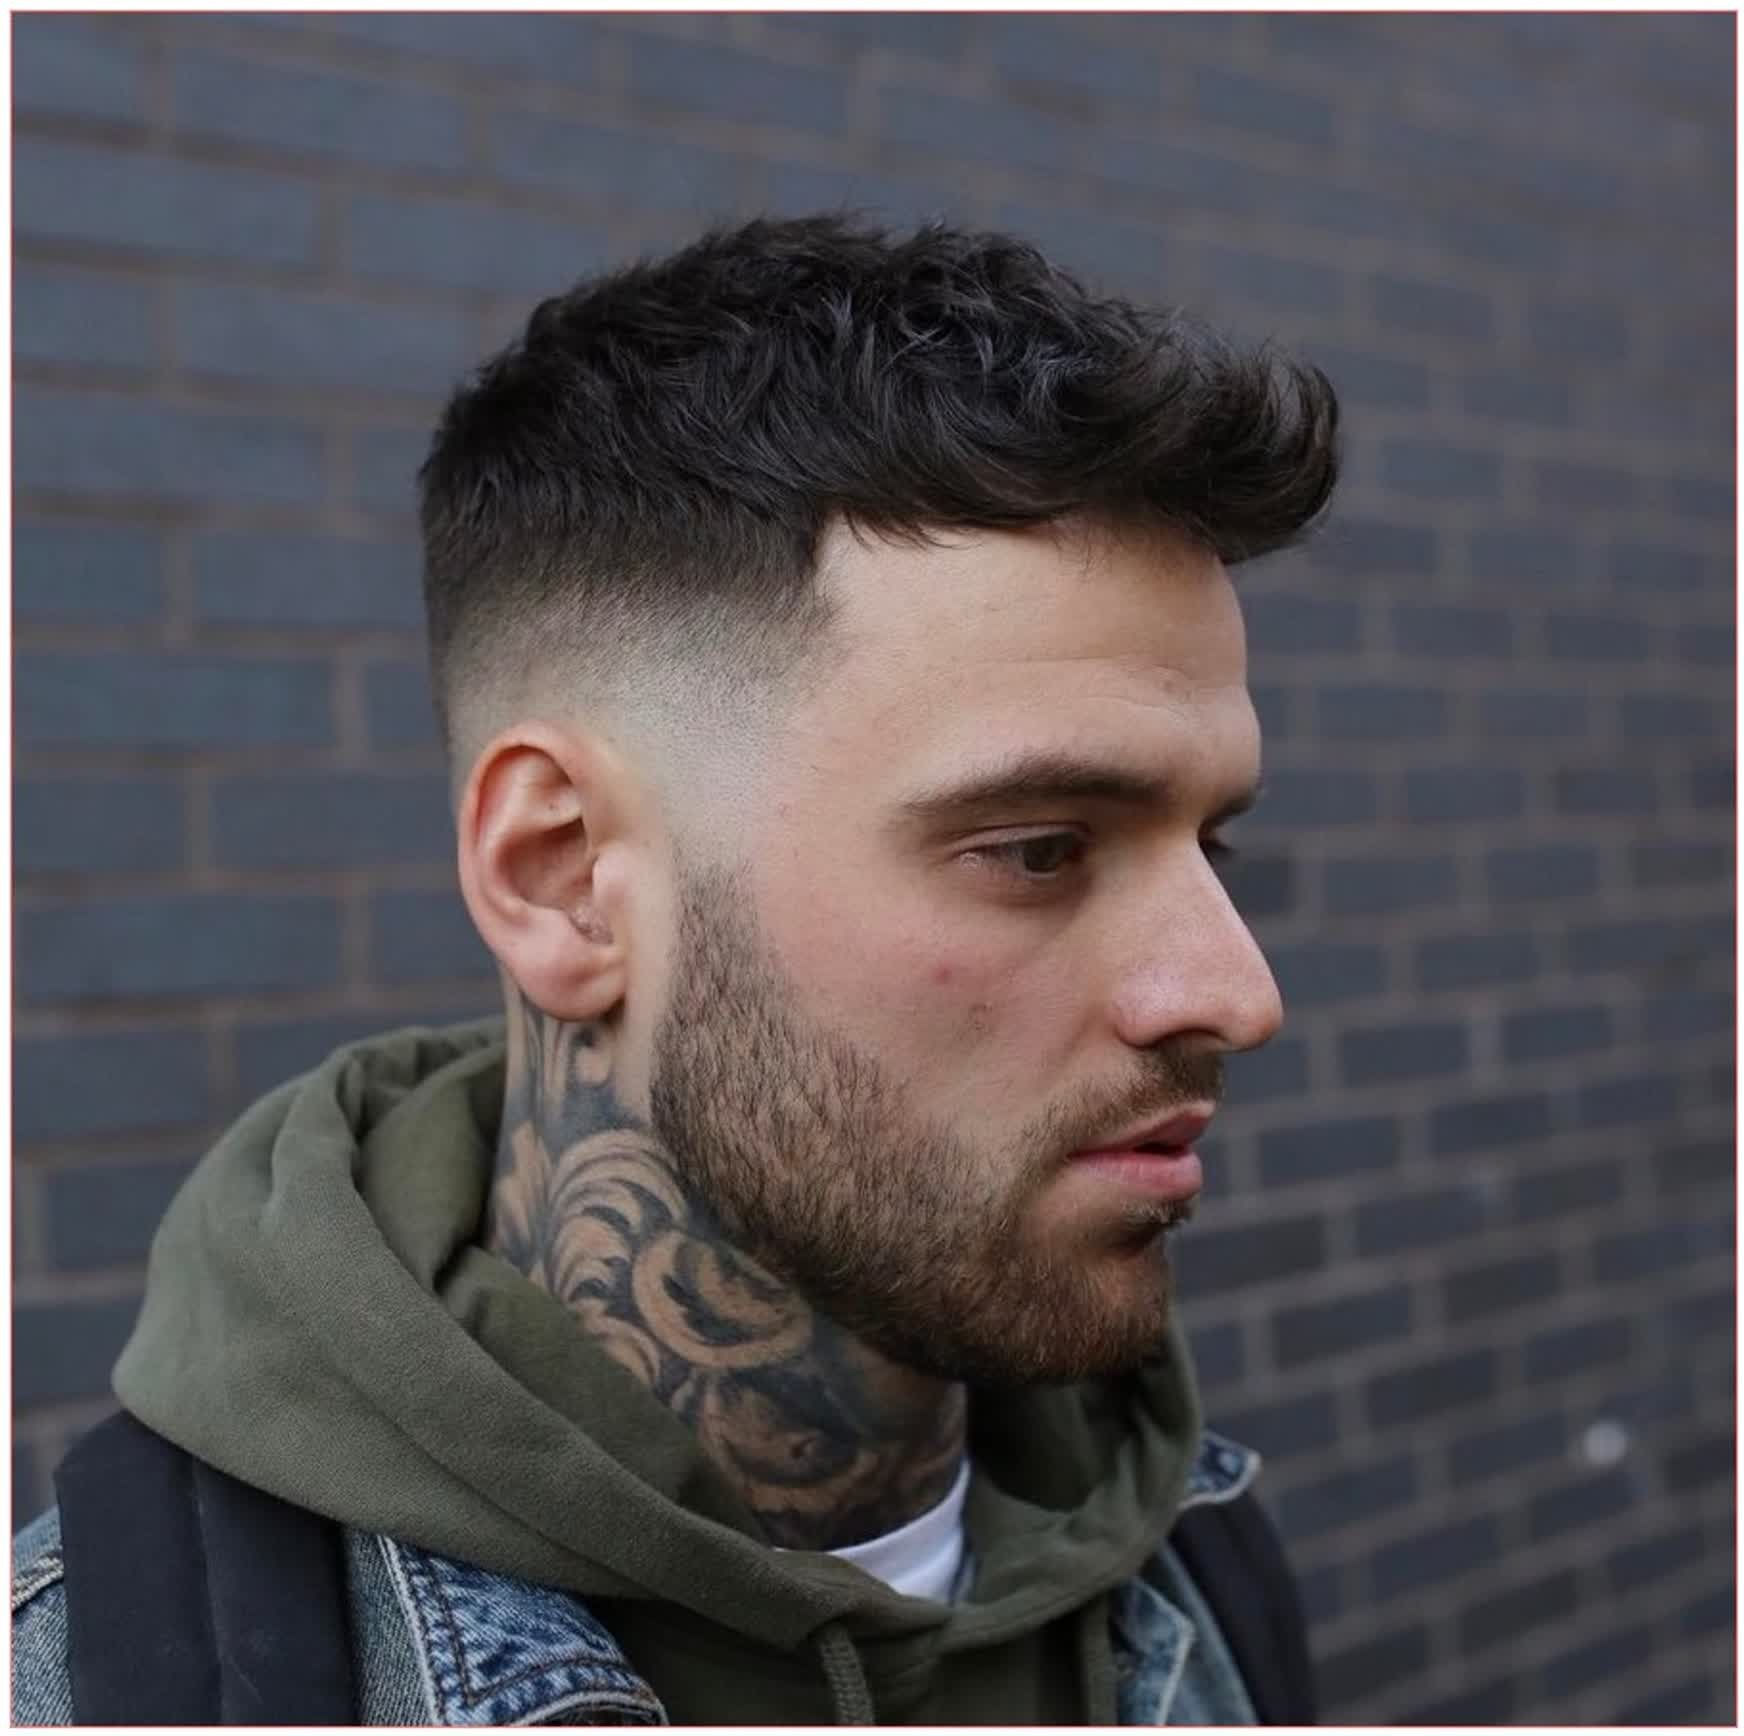 New style haircuts for men brandnew hairstyles for men with straight fine hair